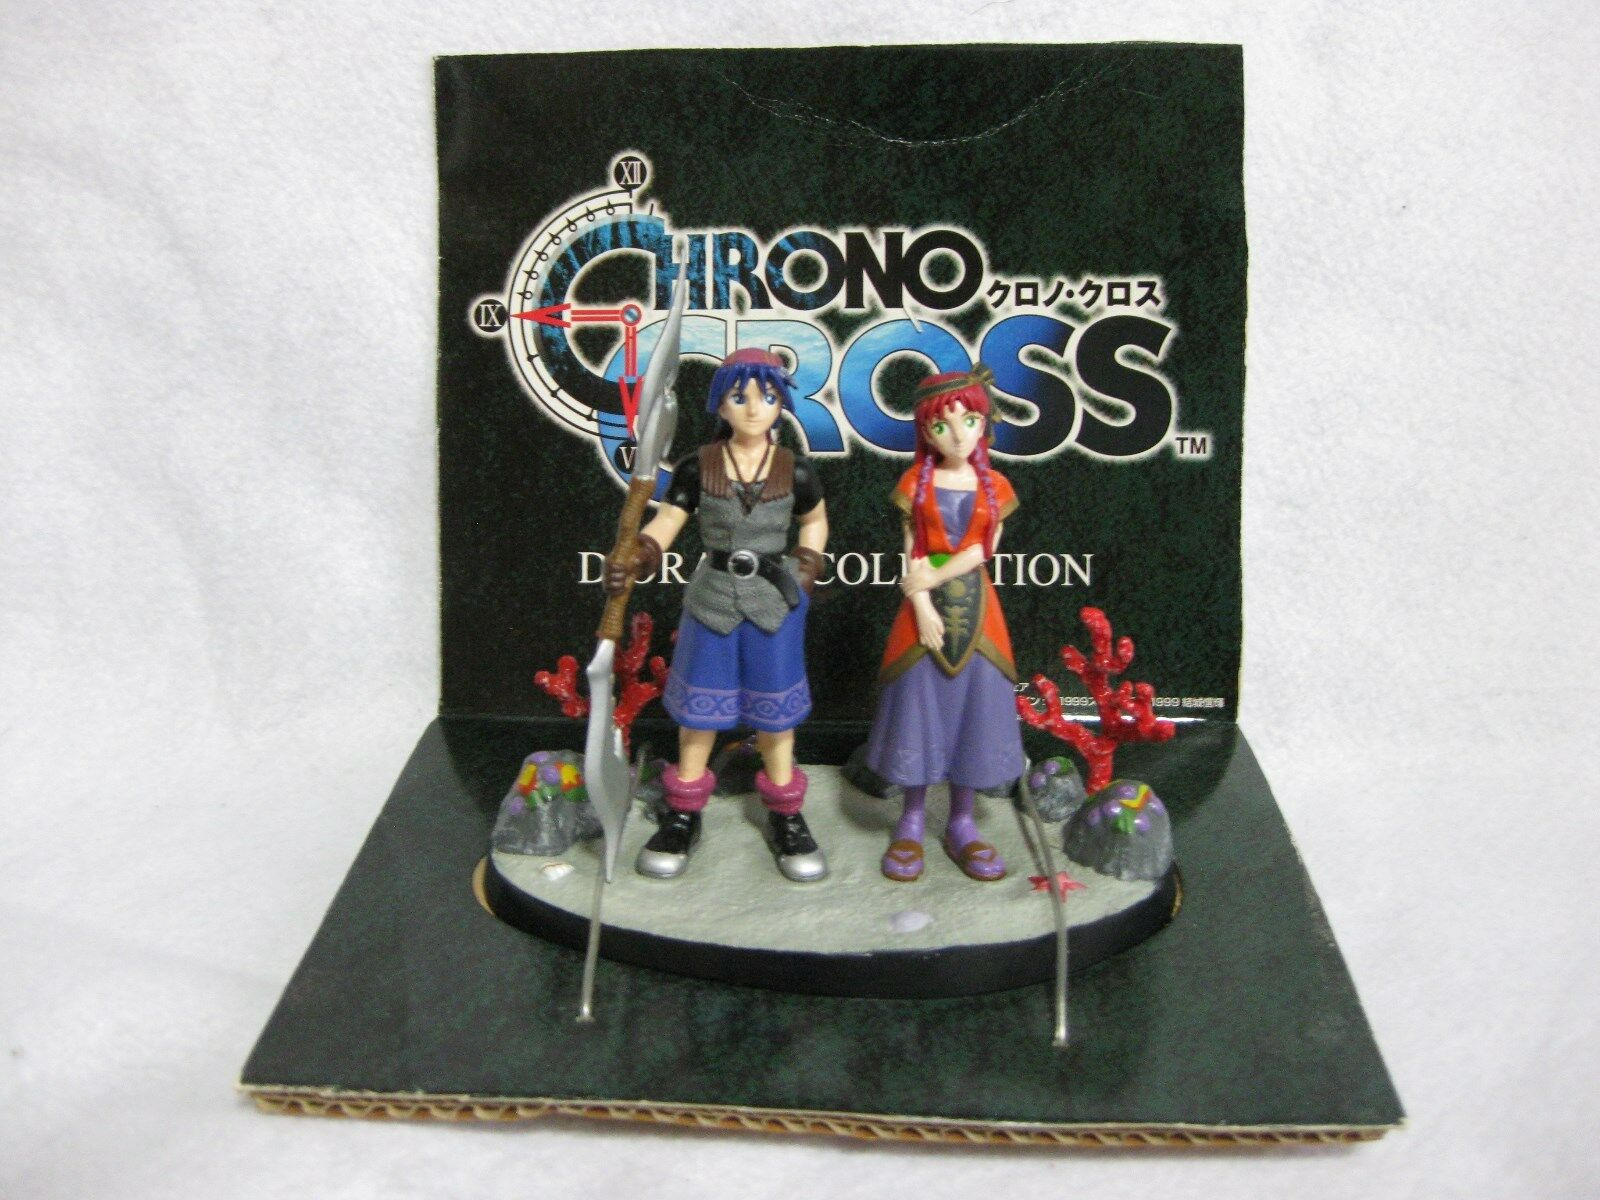 Vary Rare  CHRONO CROSS Diorama Figures Serge & Leena Japan Official Figure